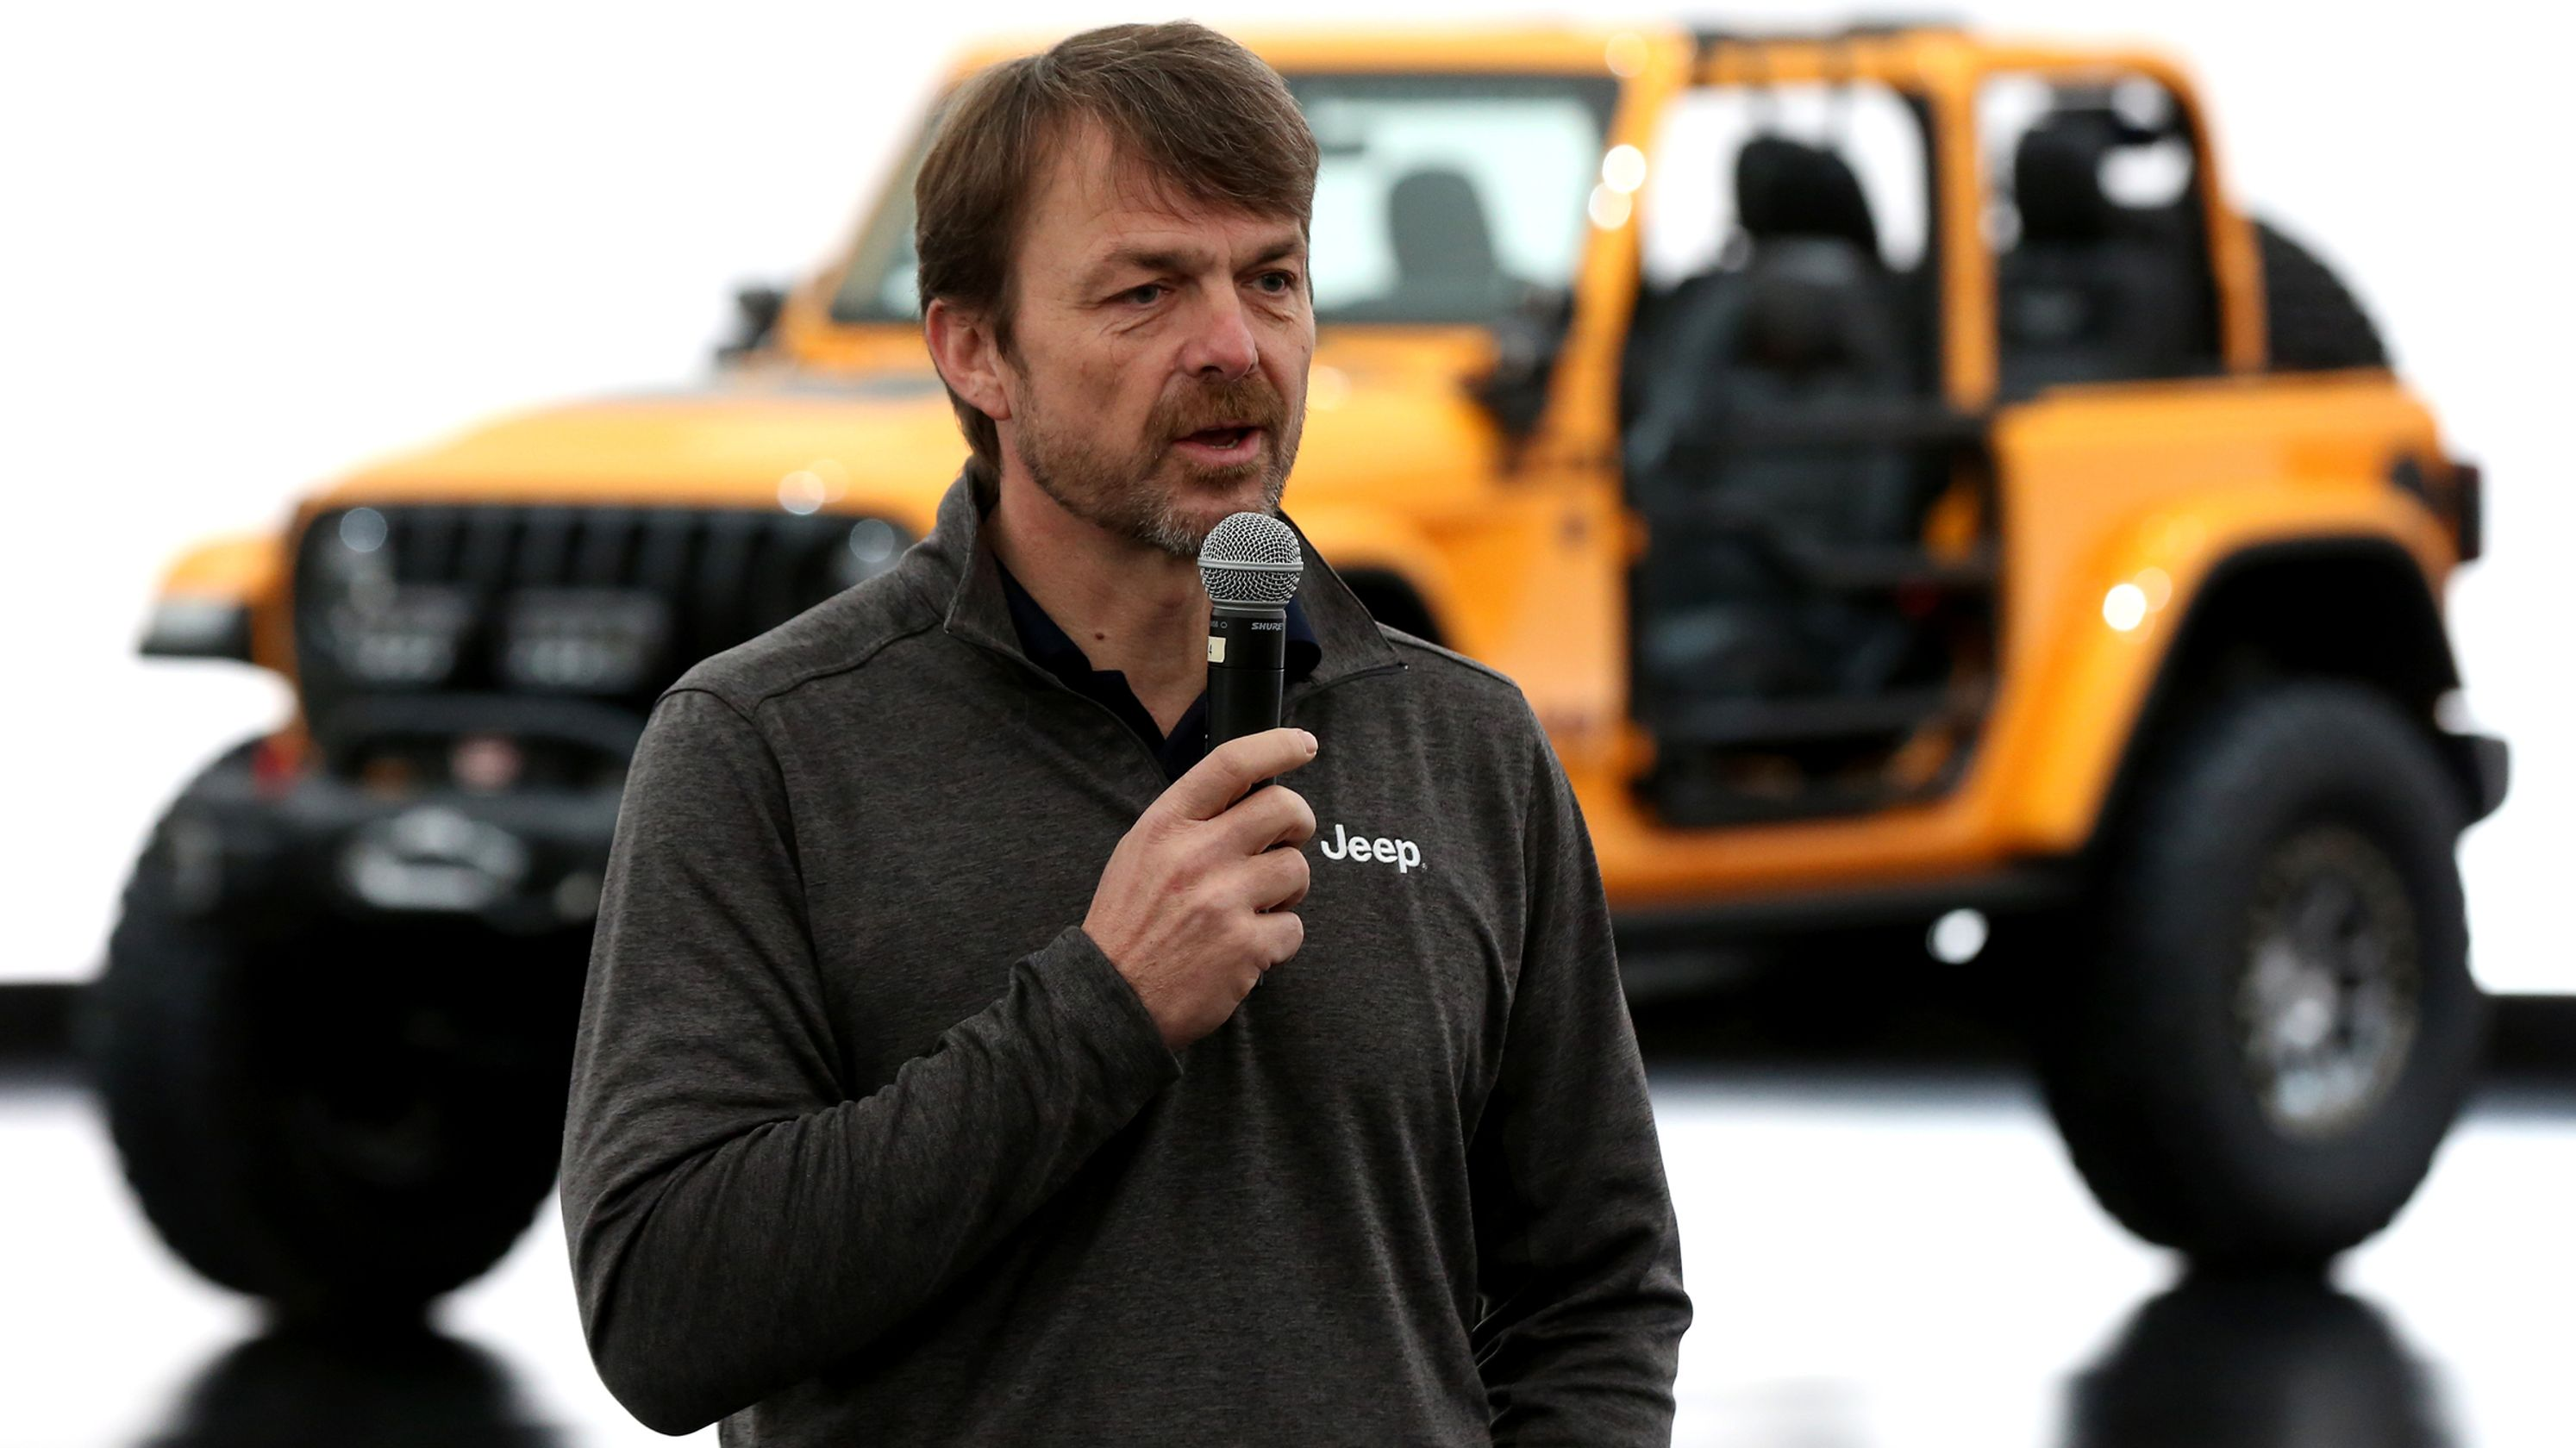 BREAKING: Jeep Head Mike Manley Named New CEO of Fiat Chrysler